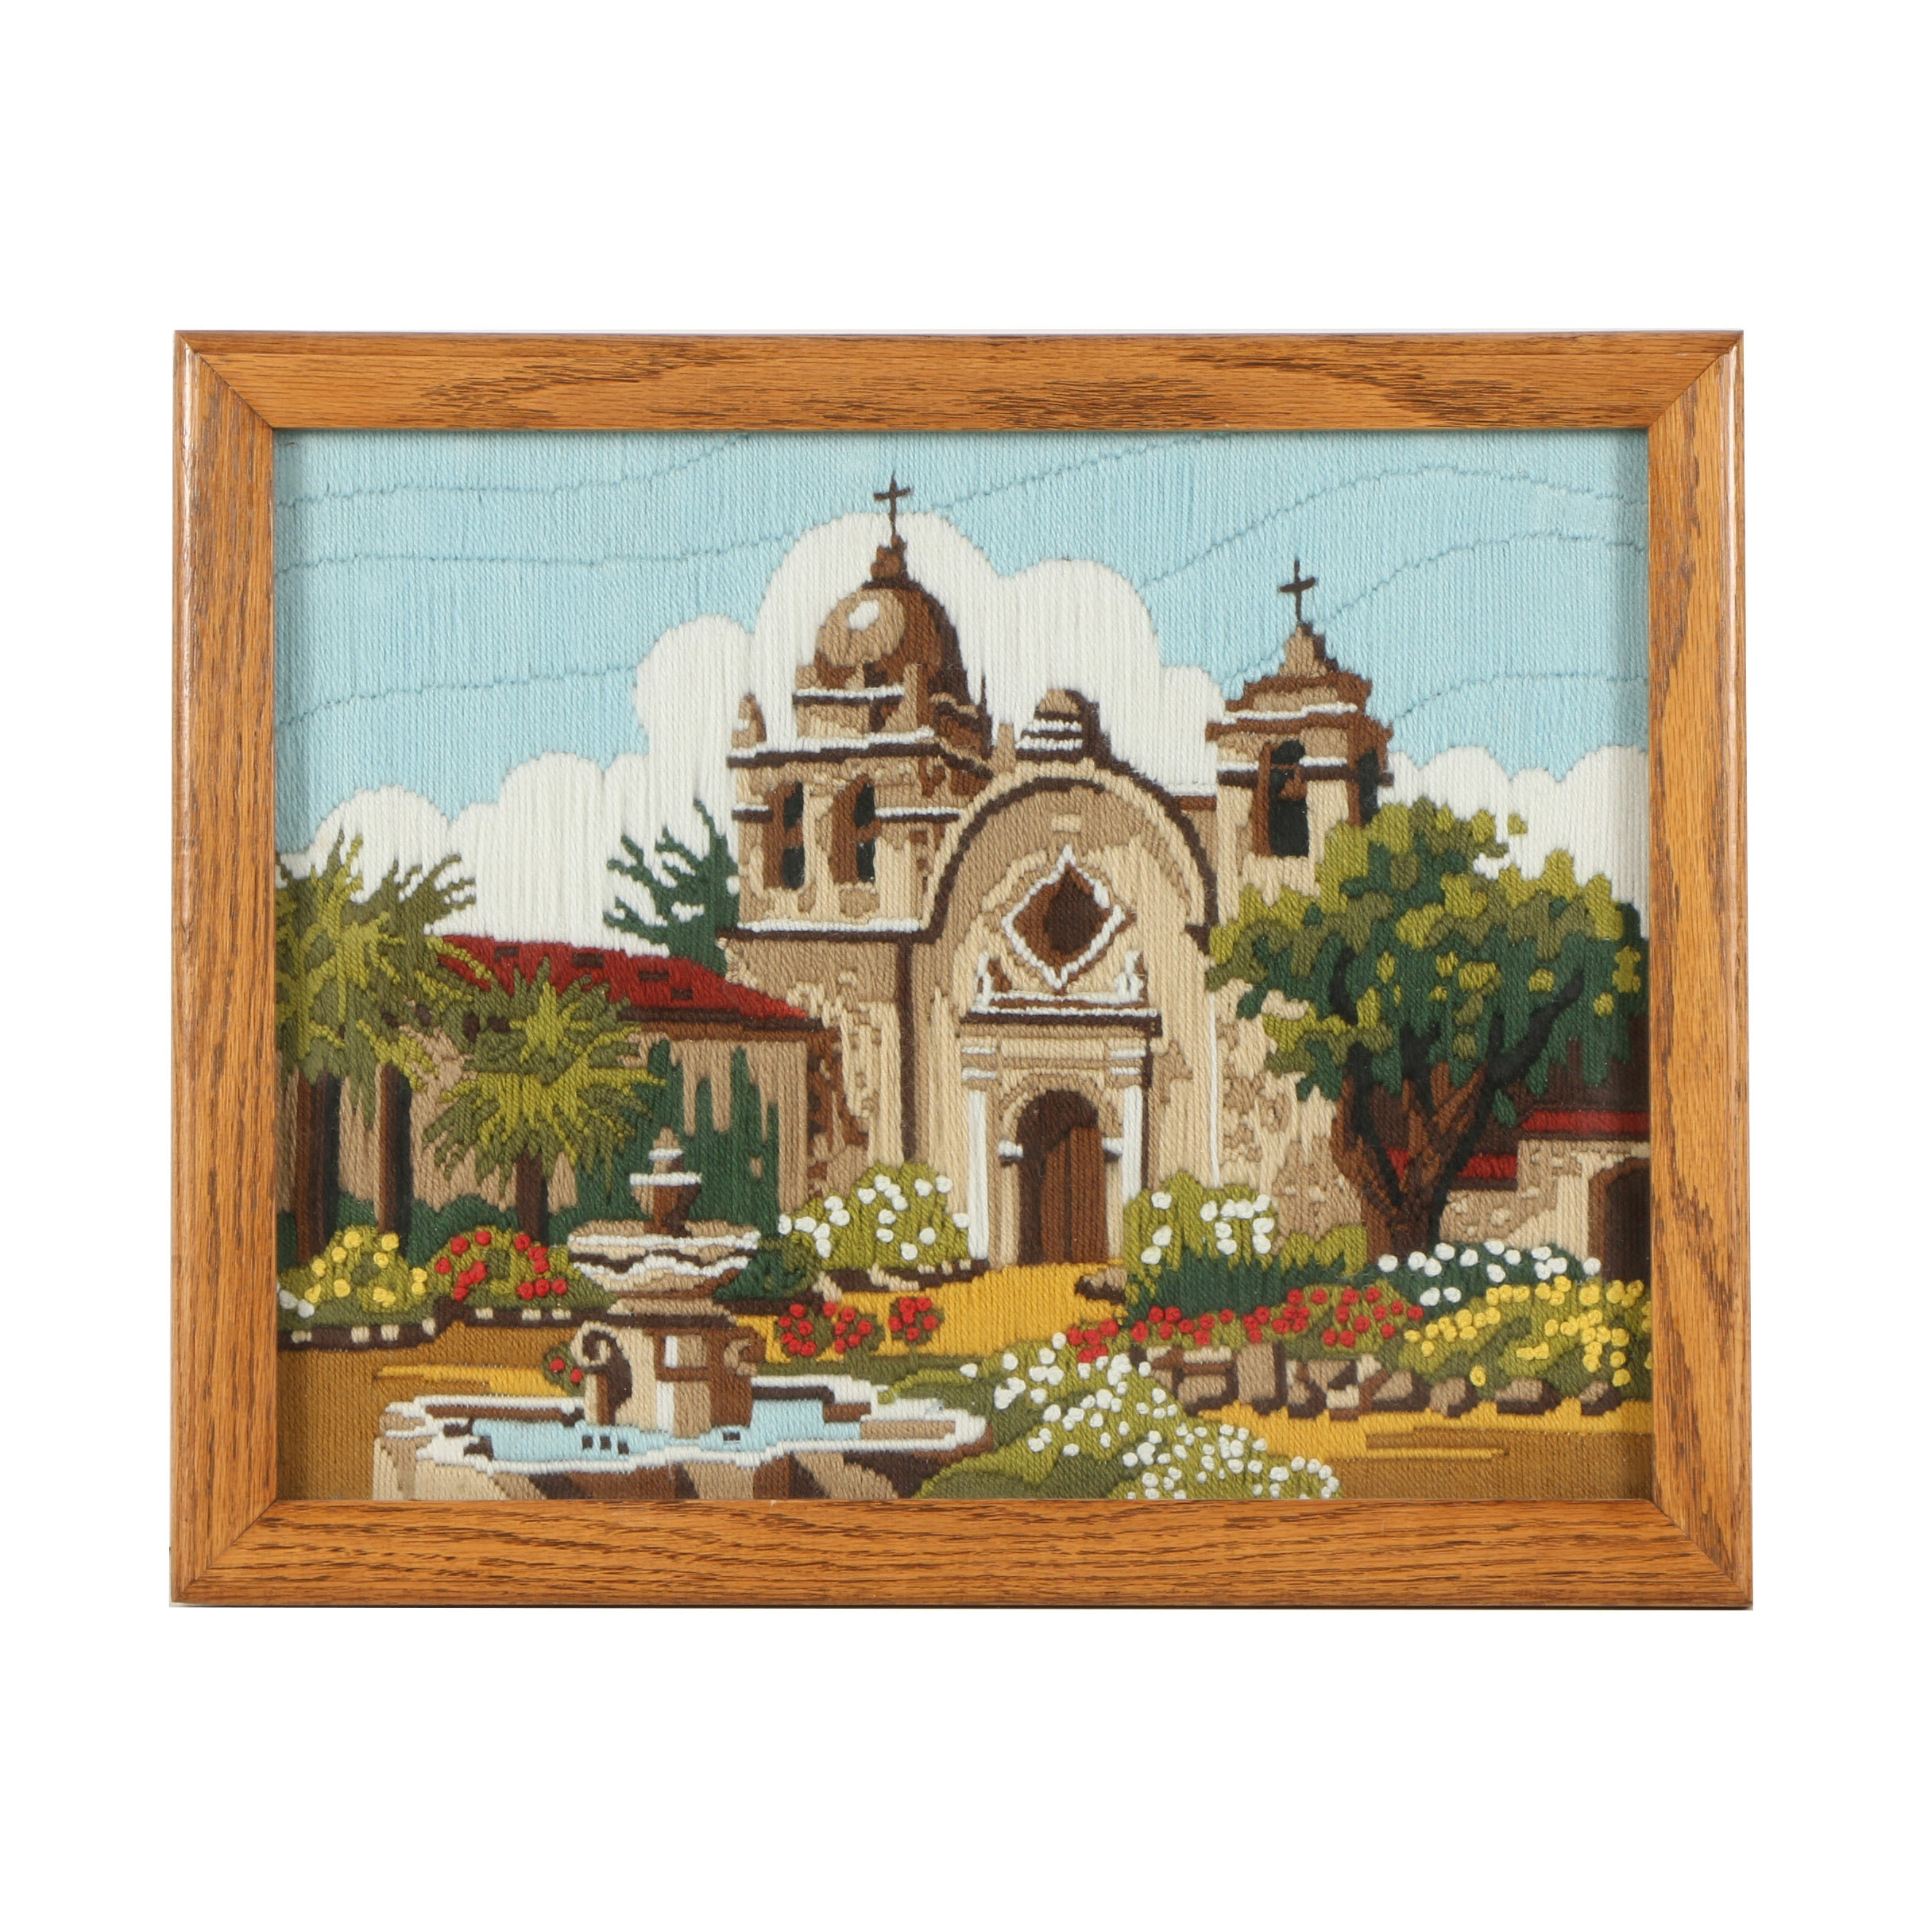 Synthetic Wool Embroidery of Architectural Mission Church Landscape